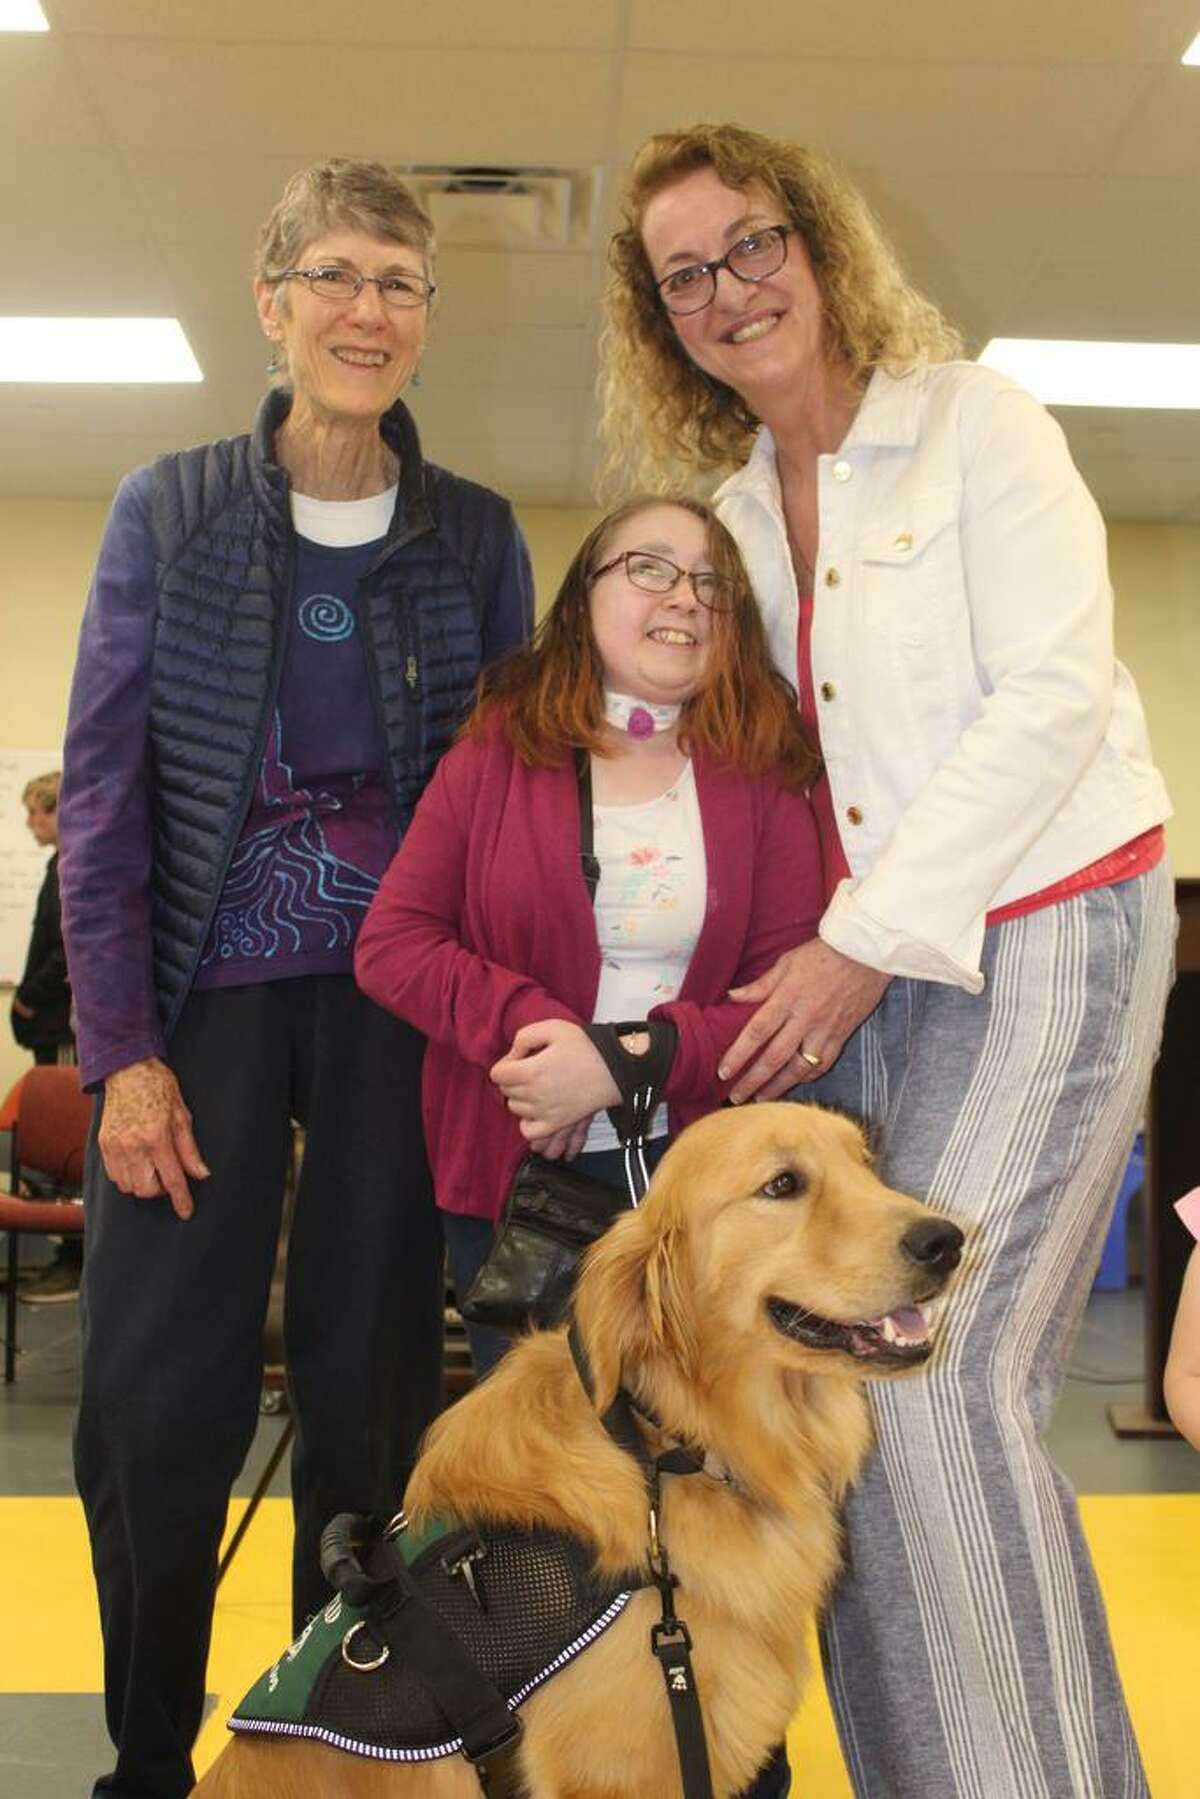 Honor, a service dog from Educated Canines Assisting with Disabilities, joins her new partner, Kitty, and trainer Lu Hailey during a graduation celebration.